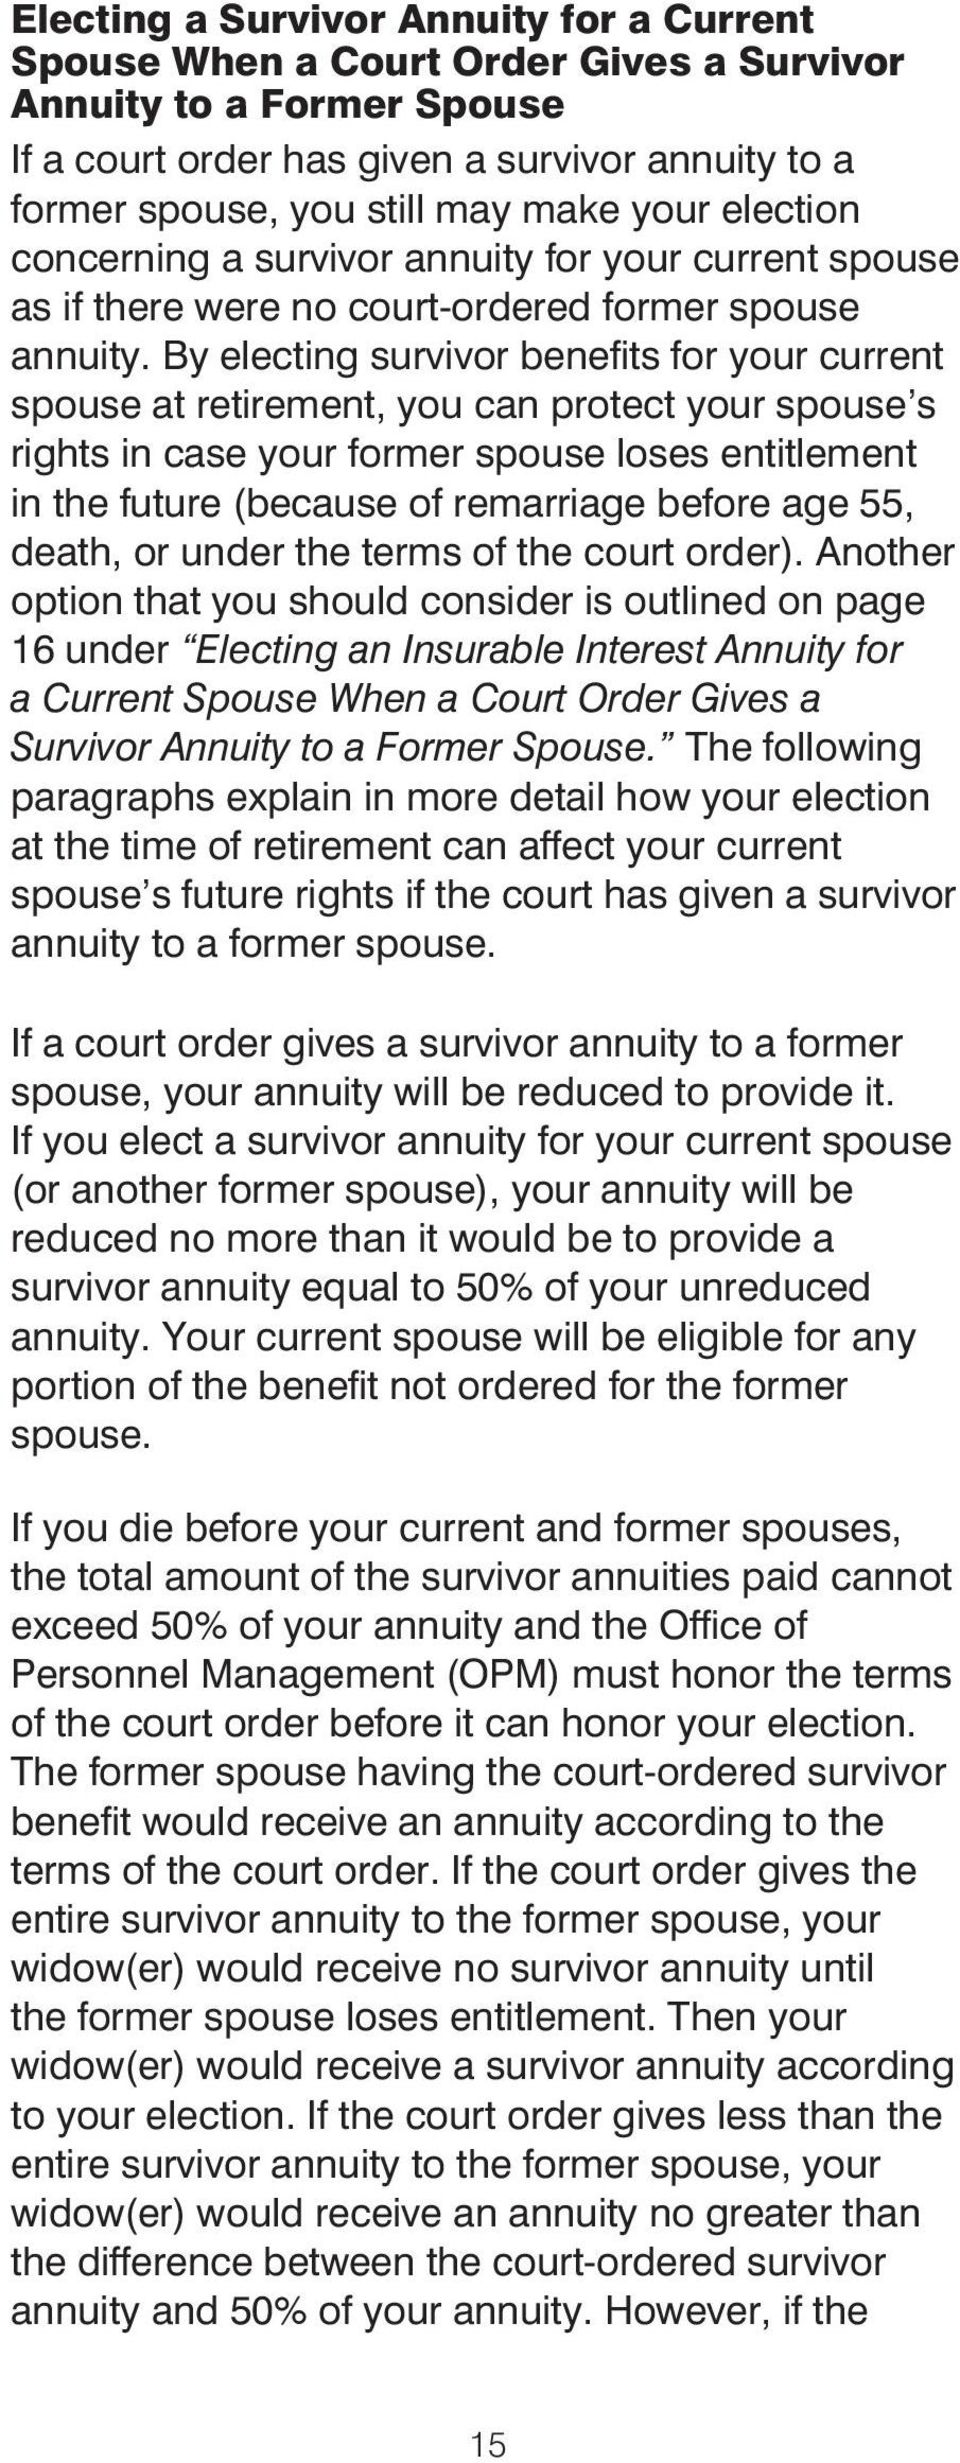 By electing survivor benefits for your current spouse at retirement, you can protect your spouse s rights in case your former spouse loses entitlement in the future (because of remarriage before age